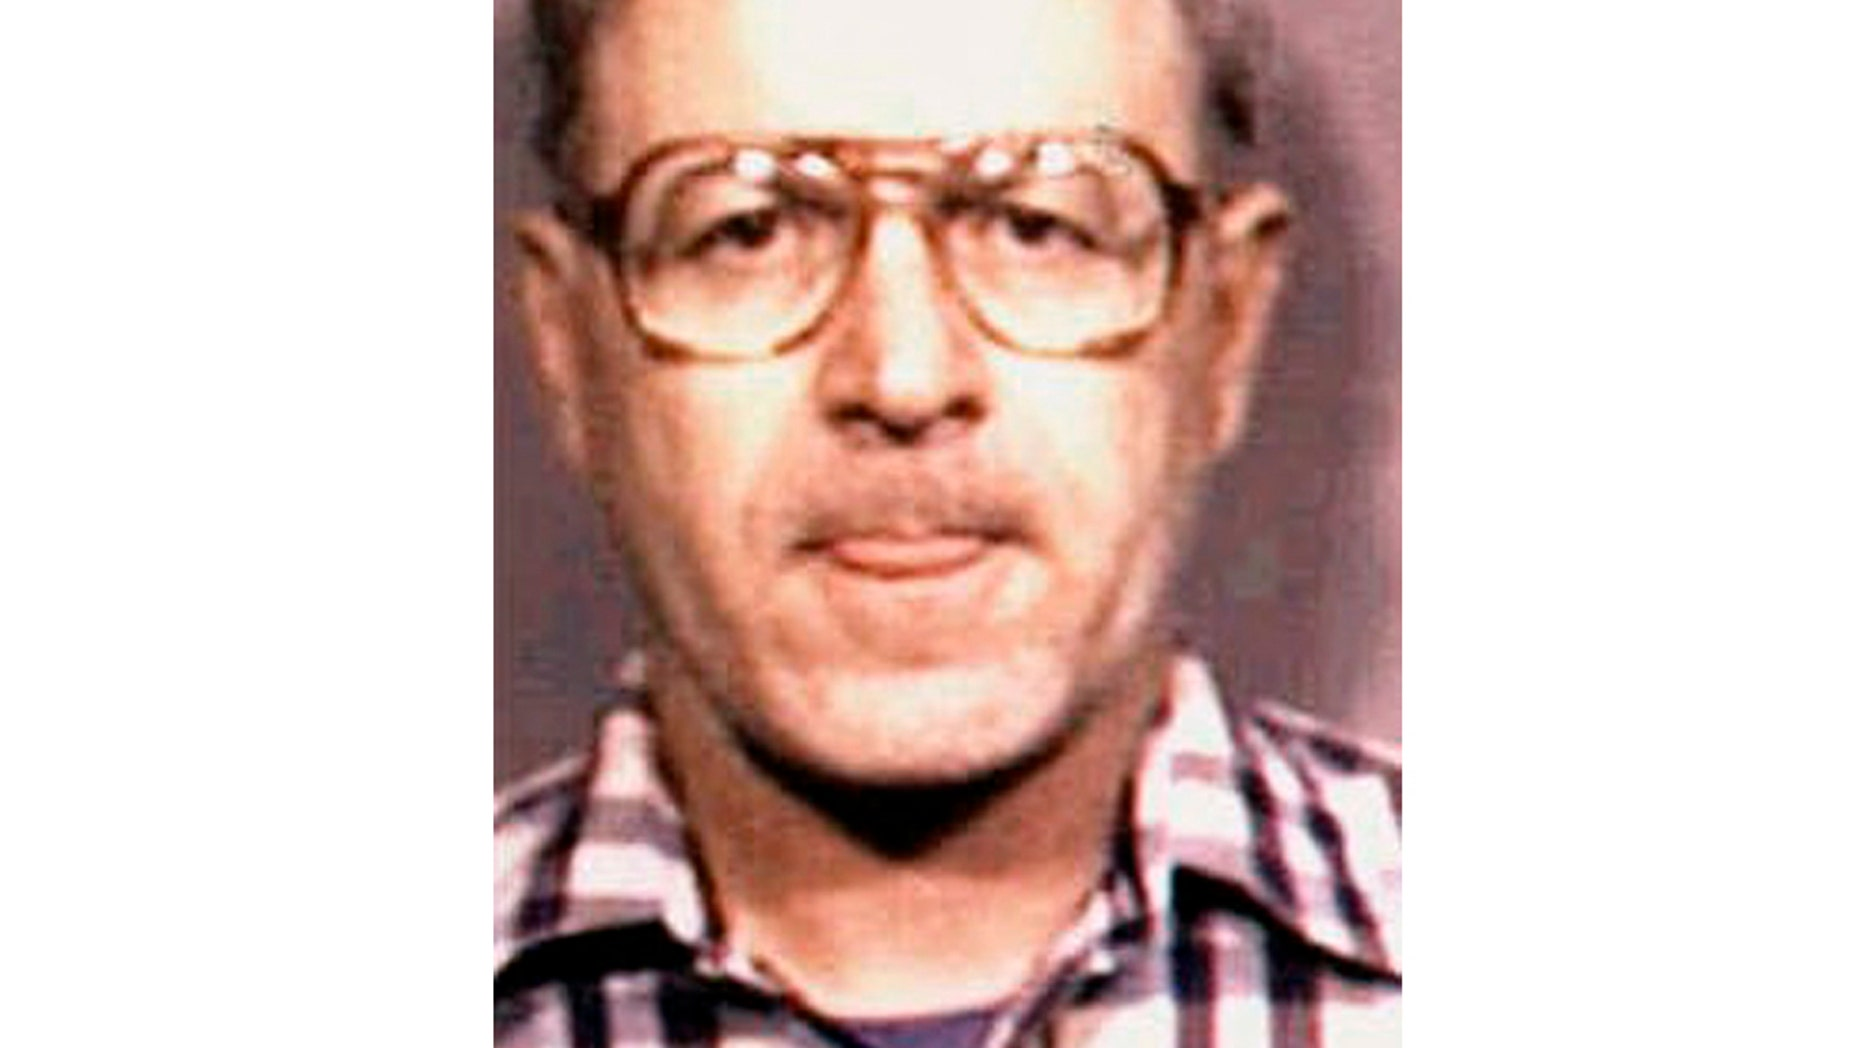 This photo provided by Caddo Sheriff's Office shows former Catholic priest Gilbert Gauthe.  The U.S. Catholic diocese where the first widely reported case of clergy sex abuse became public in the 1980s is releasing a list, Friday, April 12, 2019,  of clergy who face credible accusations of sexual abuse.   The names of 33 priests and four deacons are on the list. Other Louisiana dioceses have reported about 150 priests, deacons and other clerics. There may be some overlap, since the Lake Charles diocese was carved out of the Lafayette diocese in 1980. The Lafayette Diocese employed the first widely known abuser,  Gauthe, who pleaded guilty in 1985 to abusing 11 boys and testified that he'd abused dozens while serving at four churches in the diocese.   (Caddo Sheriff's Office via AP)